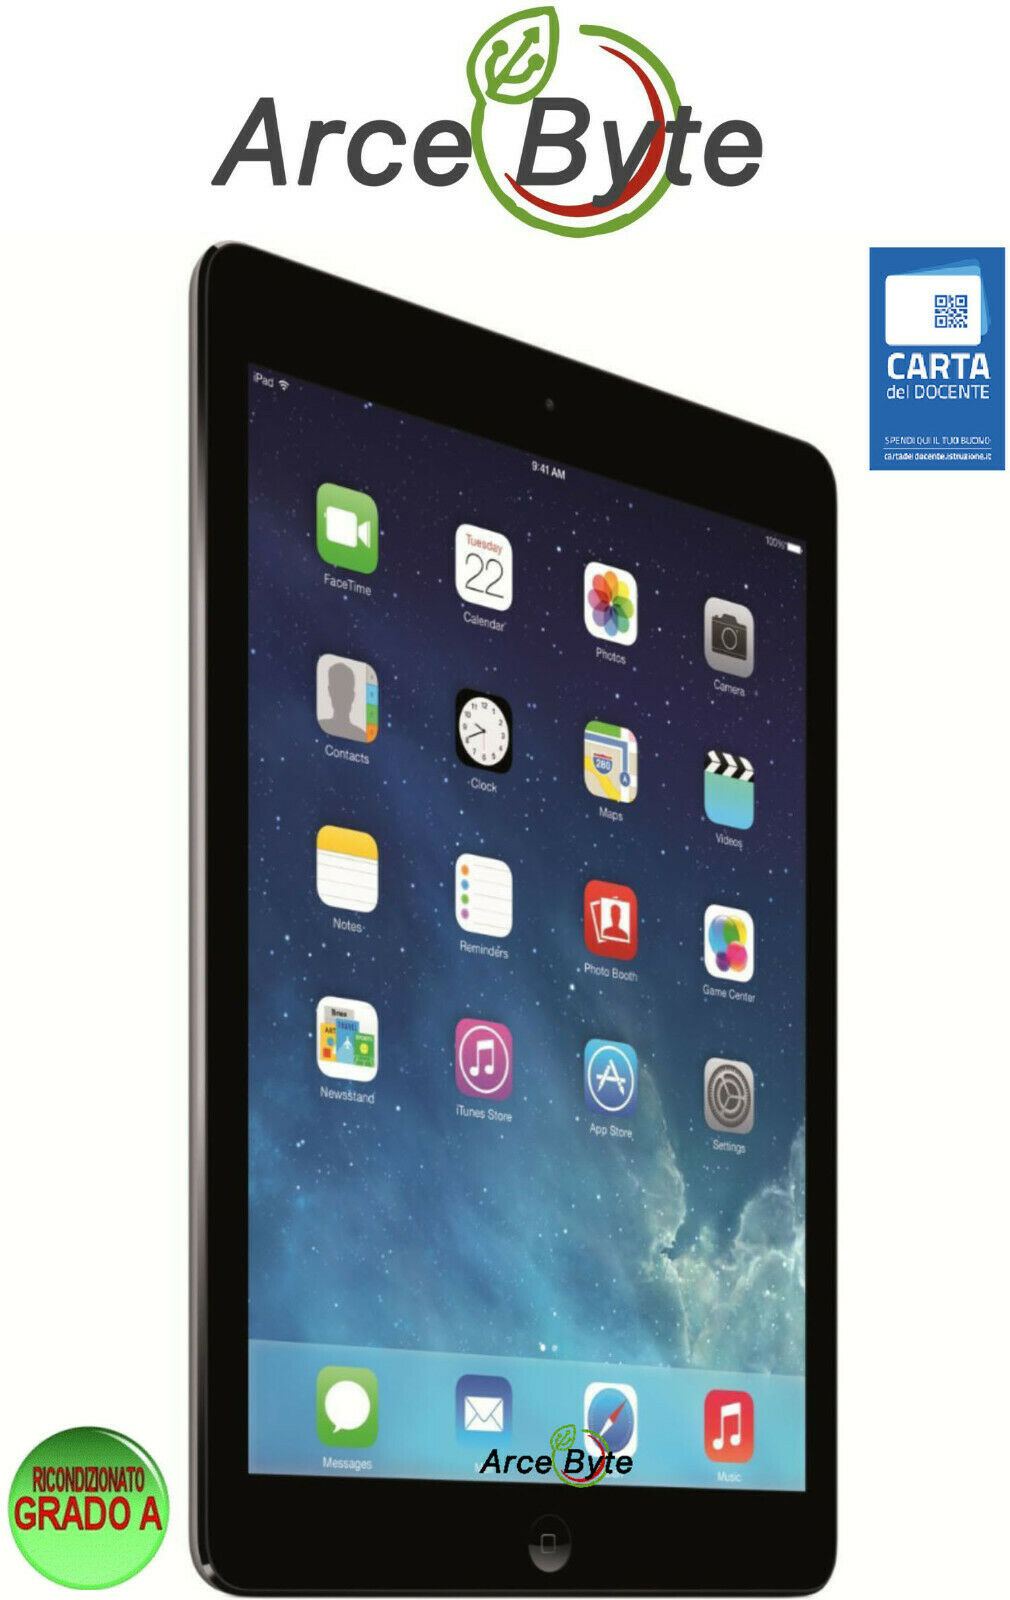 iPad: APPLE IPAD AIR 9.7 RETINA DISPLAY 16GB IOS 12 GRADO A FATTURABILE RICONDIZIONATO